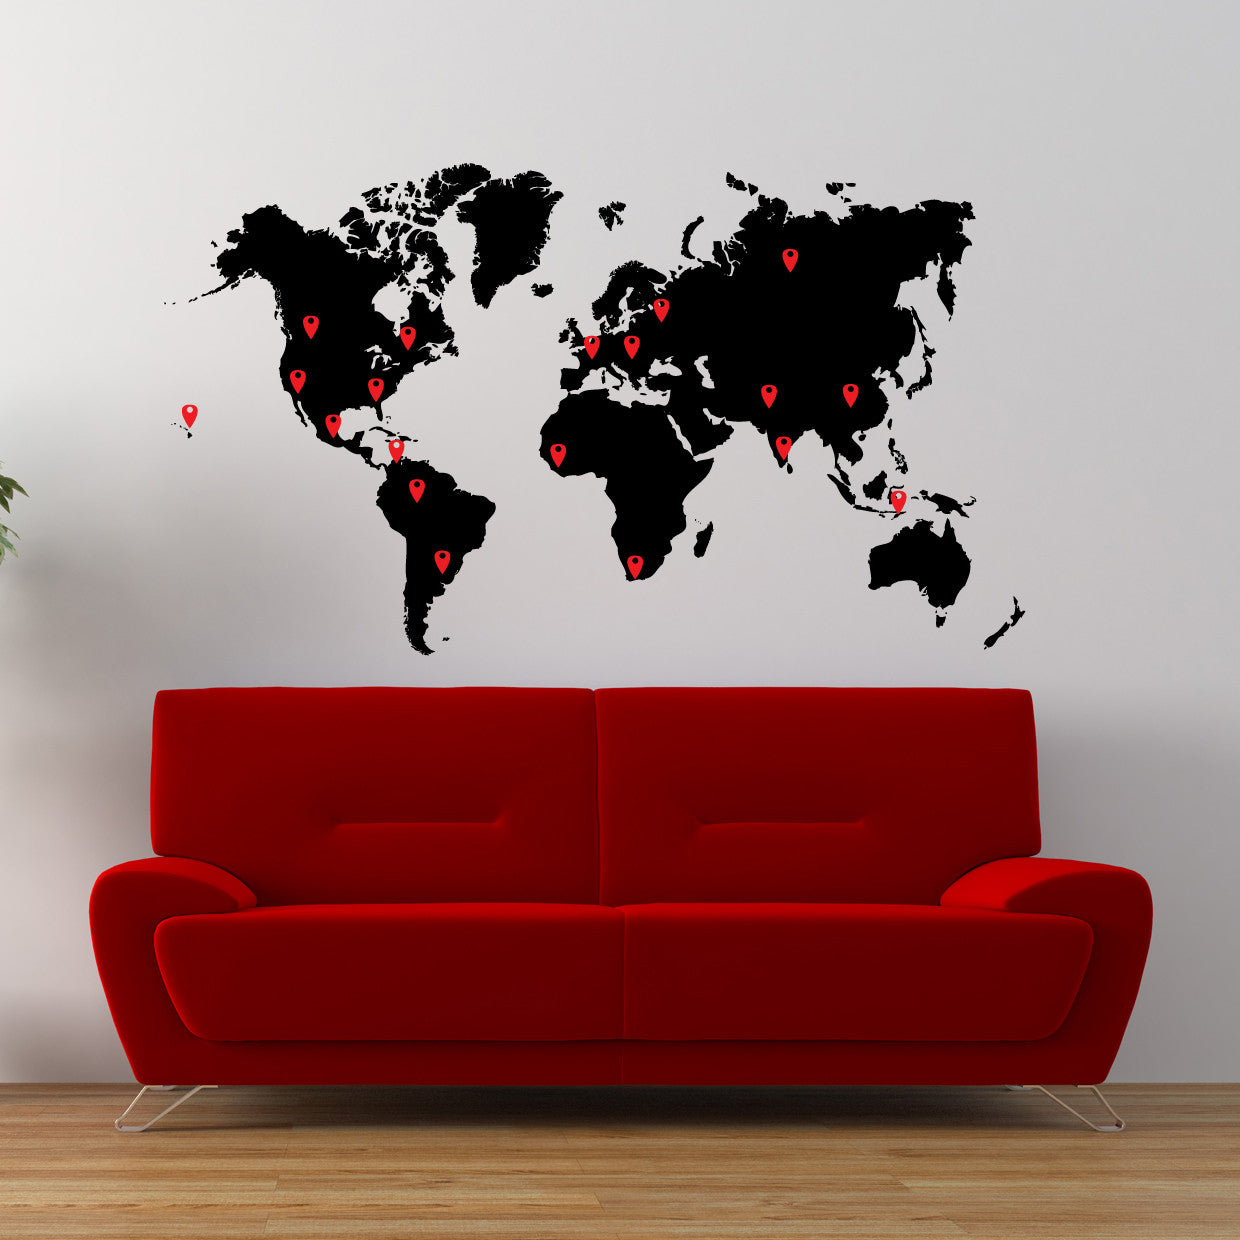 Large world map wall decal world map pin drops decal 873 removable world map pin drops decal 873 gumiabroncs Choice Image